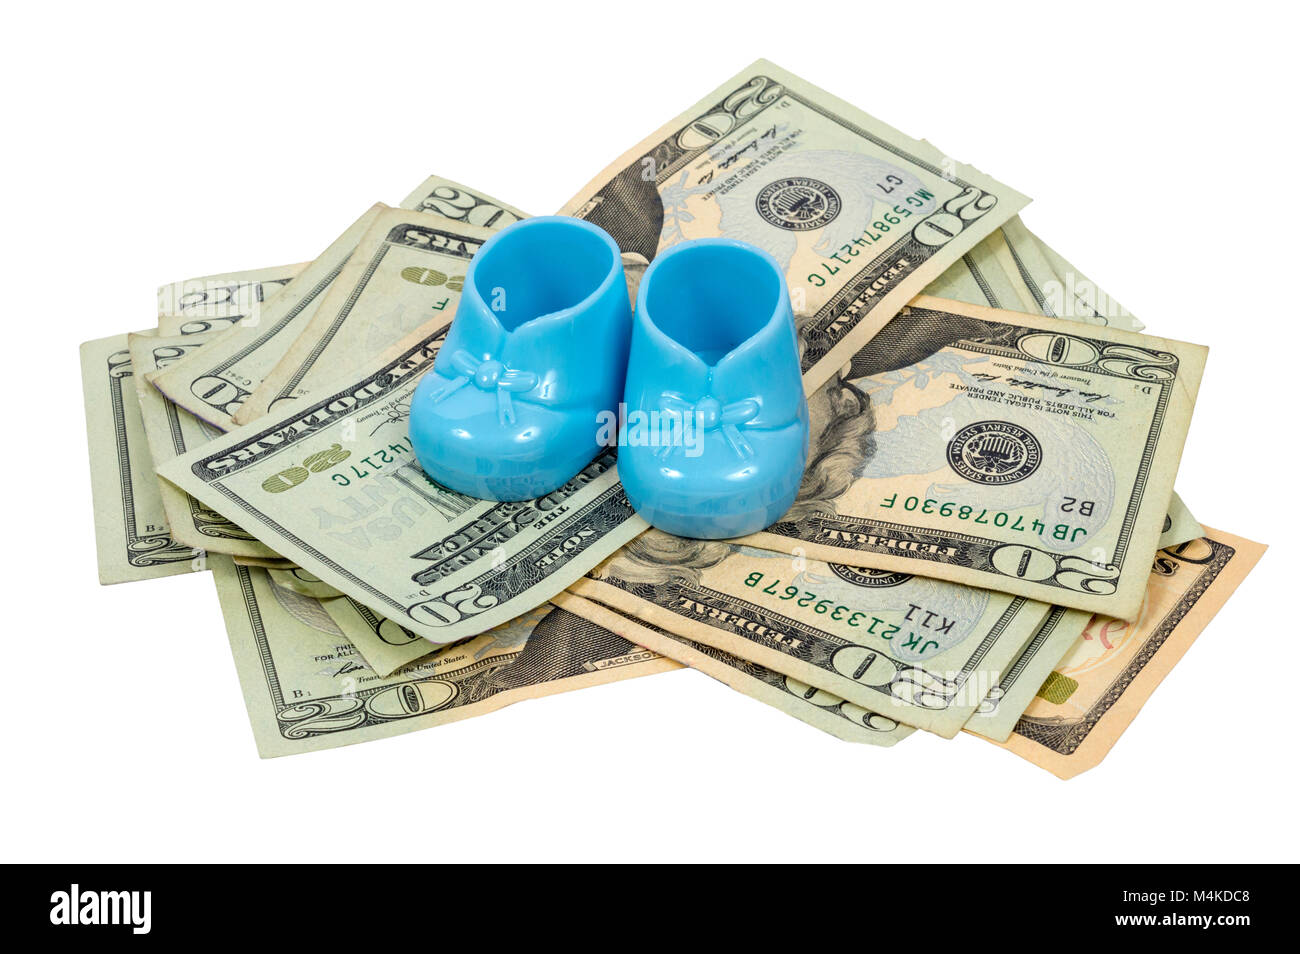 Horizontal shot of a pair of blue plastic baby booties resting on a pile of twenty dollary bills. - Stock Image